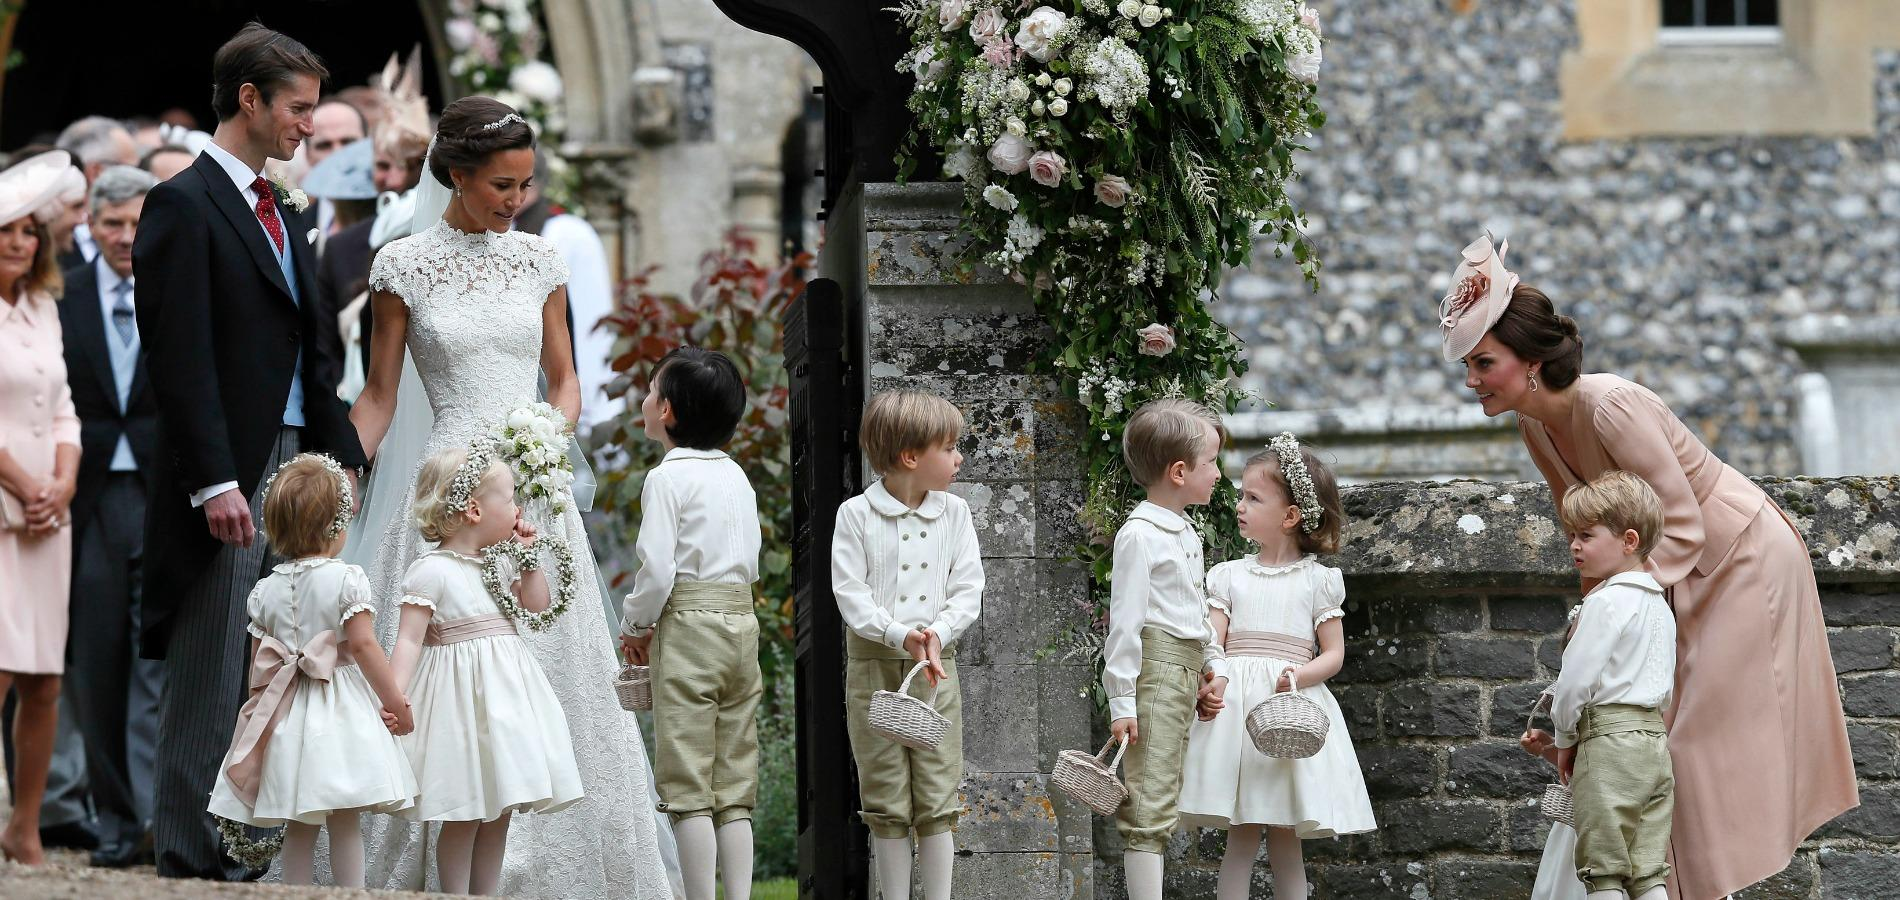 pippa middleton toutes les photos de son mariage avec james. Black Bedroom Furniture Sets. Home Design Ideas